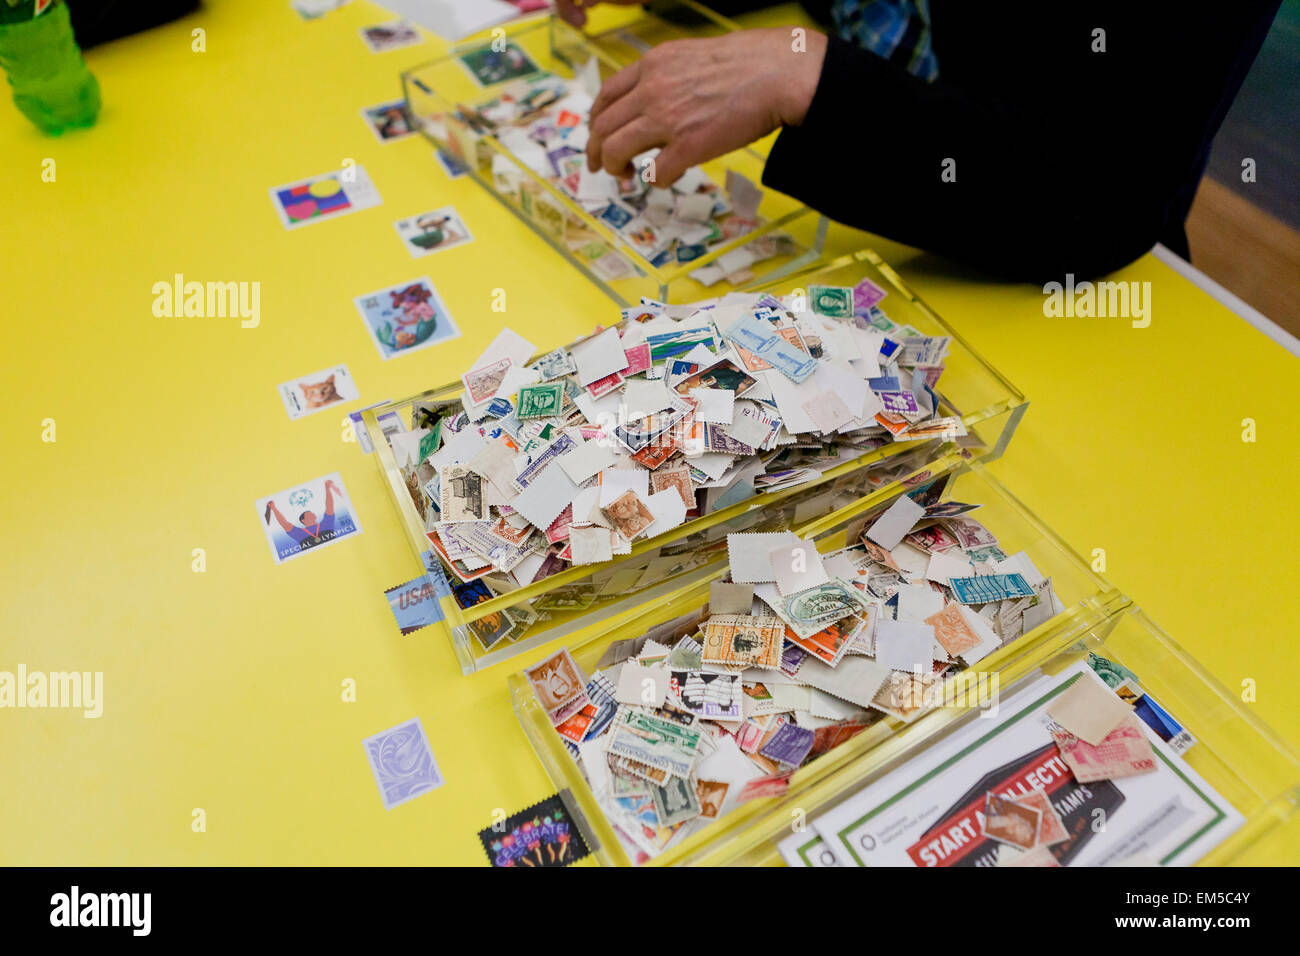 Man sorting used stamp collection - USA - Stock Image